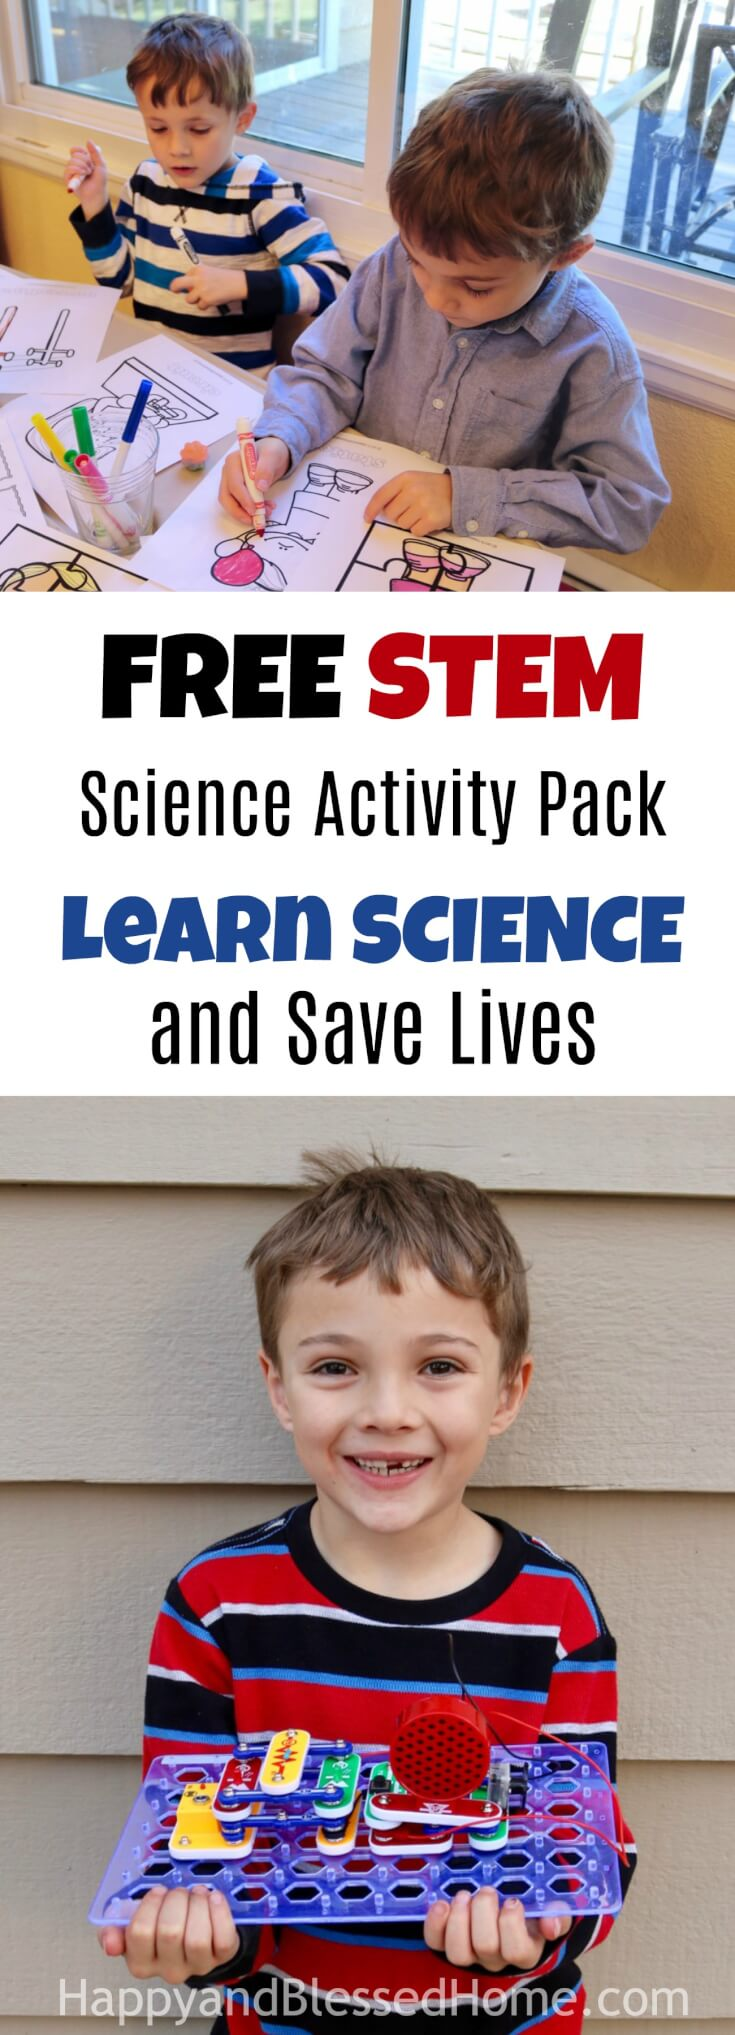 Do your kids enjoy science and electricity? Then they'll love this FREE 20 Page STEM Activity Pack Featuring Electricity. Learn Science and save lives.